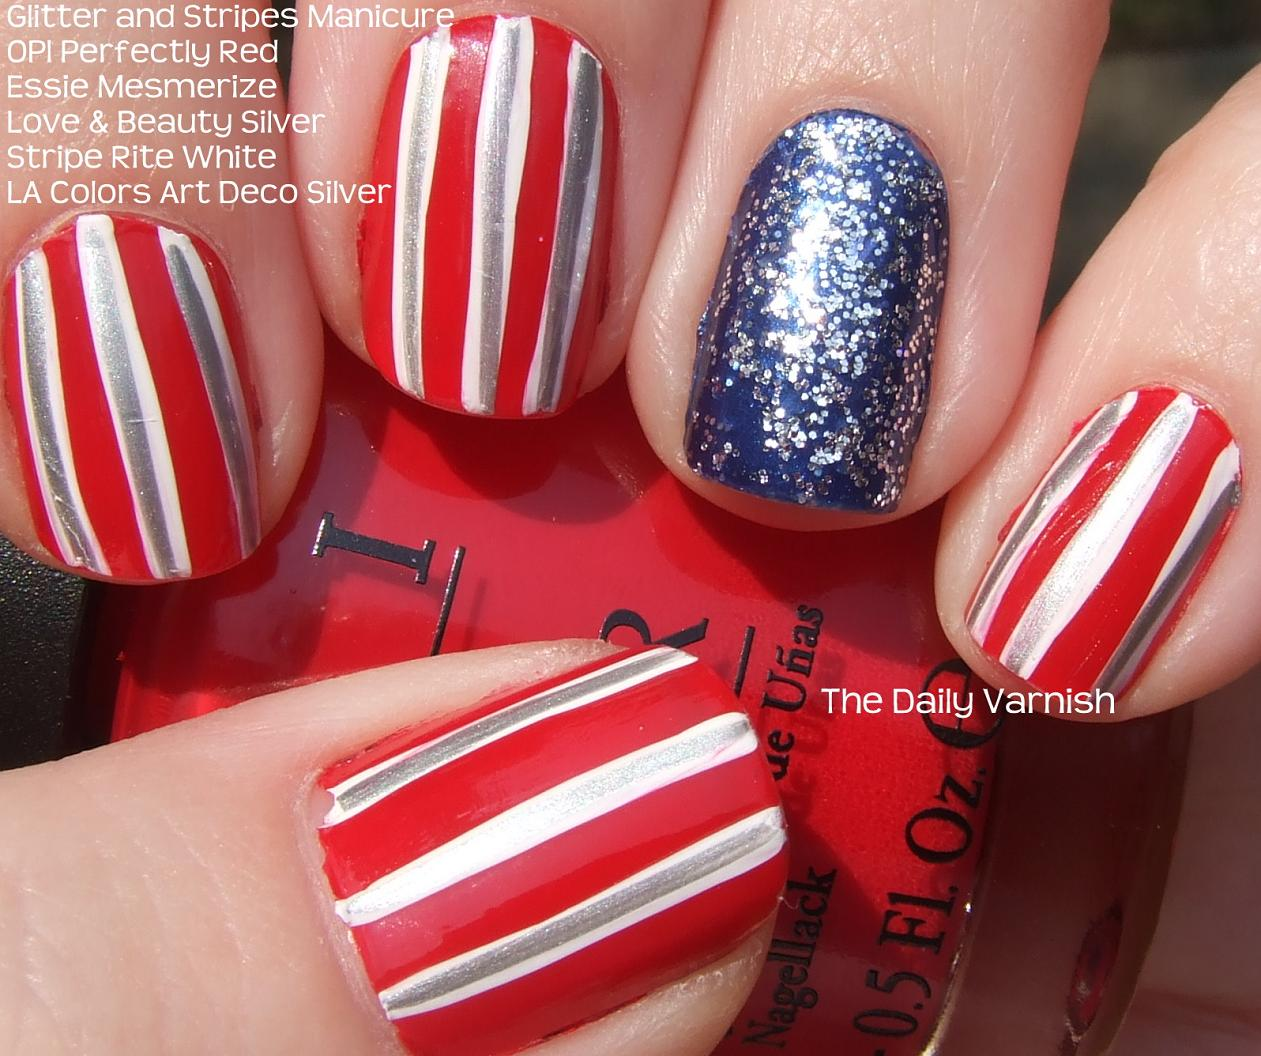 4th-of-july-nail-art 21 Awesome 4th Of July Patriotic Day Nail Design Ideas 21 Awesome 4th Of July Patriotic Day Nail Design Ideas 4th of july nail art